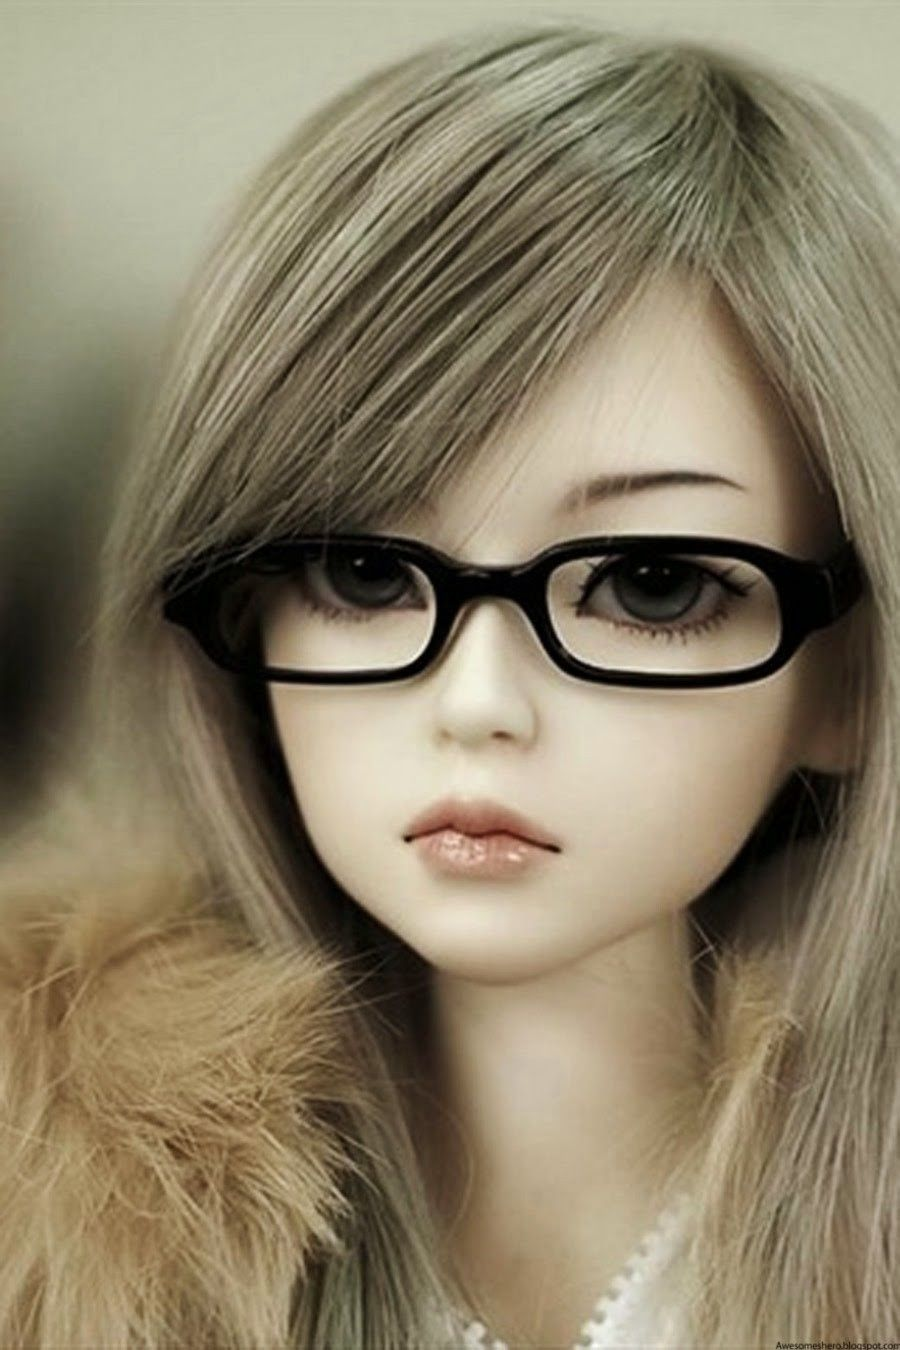 looking for dolls profile pictures for facebook for girls get looking for dolls profile pictures for facebook for girls get beautiful dolls profile pictures for